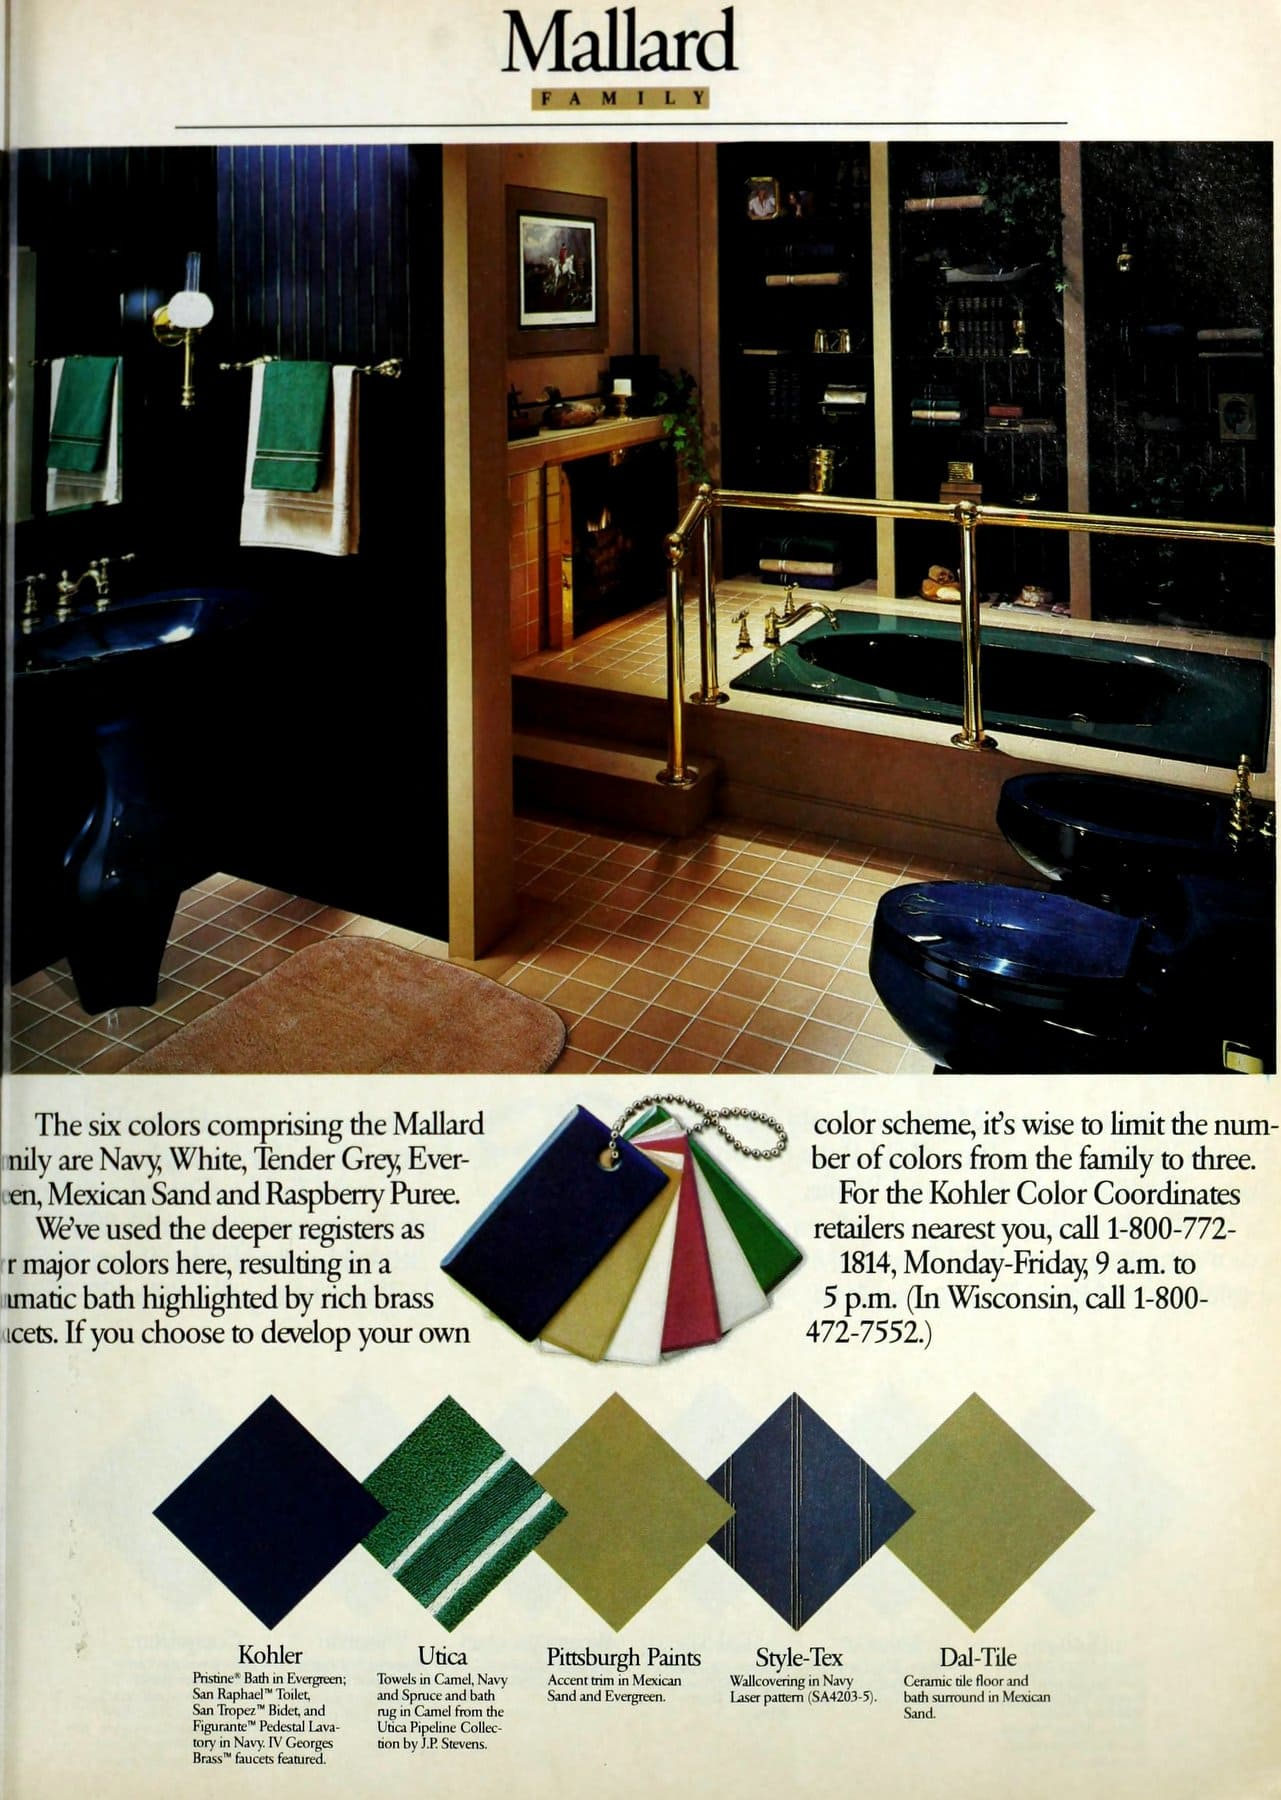 Mallard green family color bathroom decor scheme (1986)